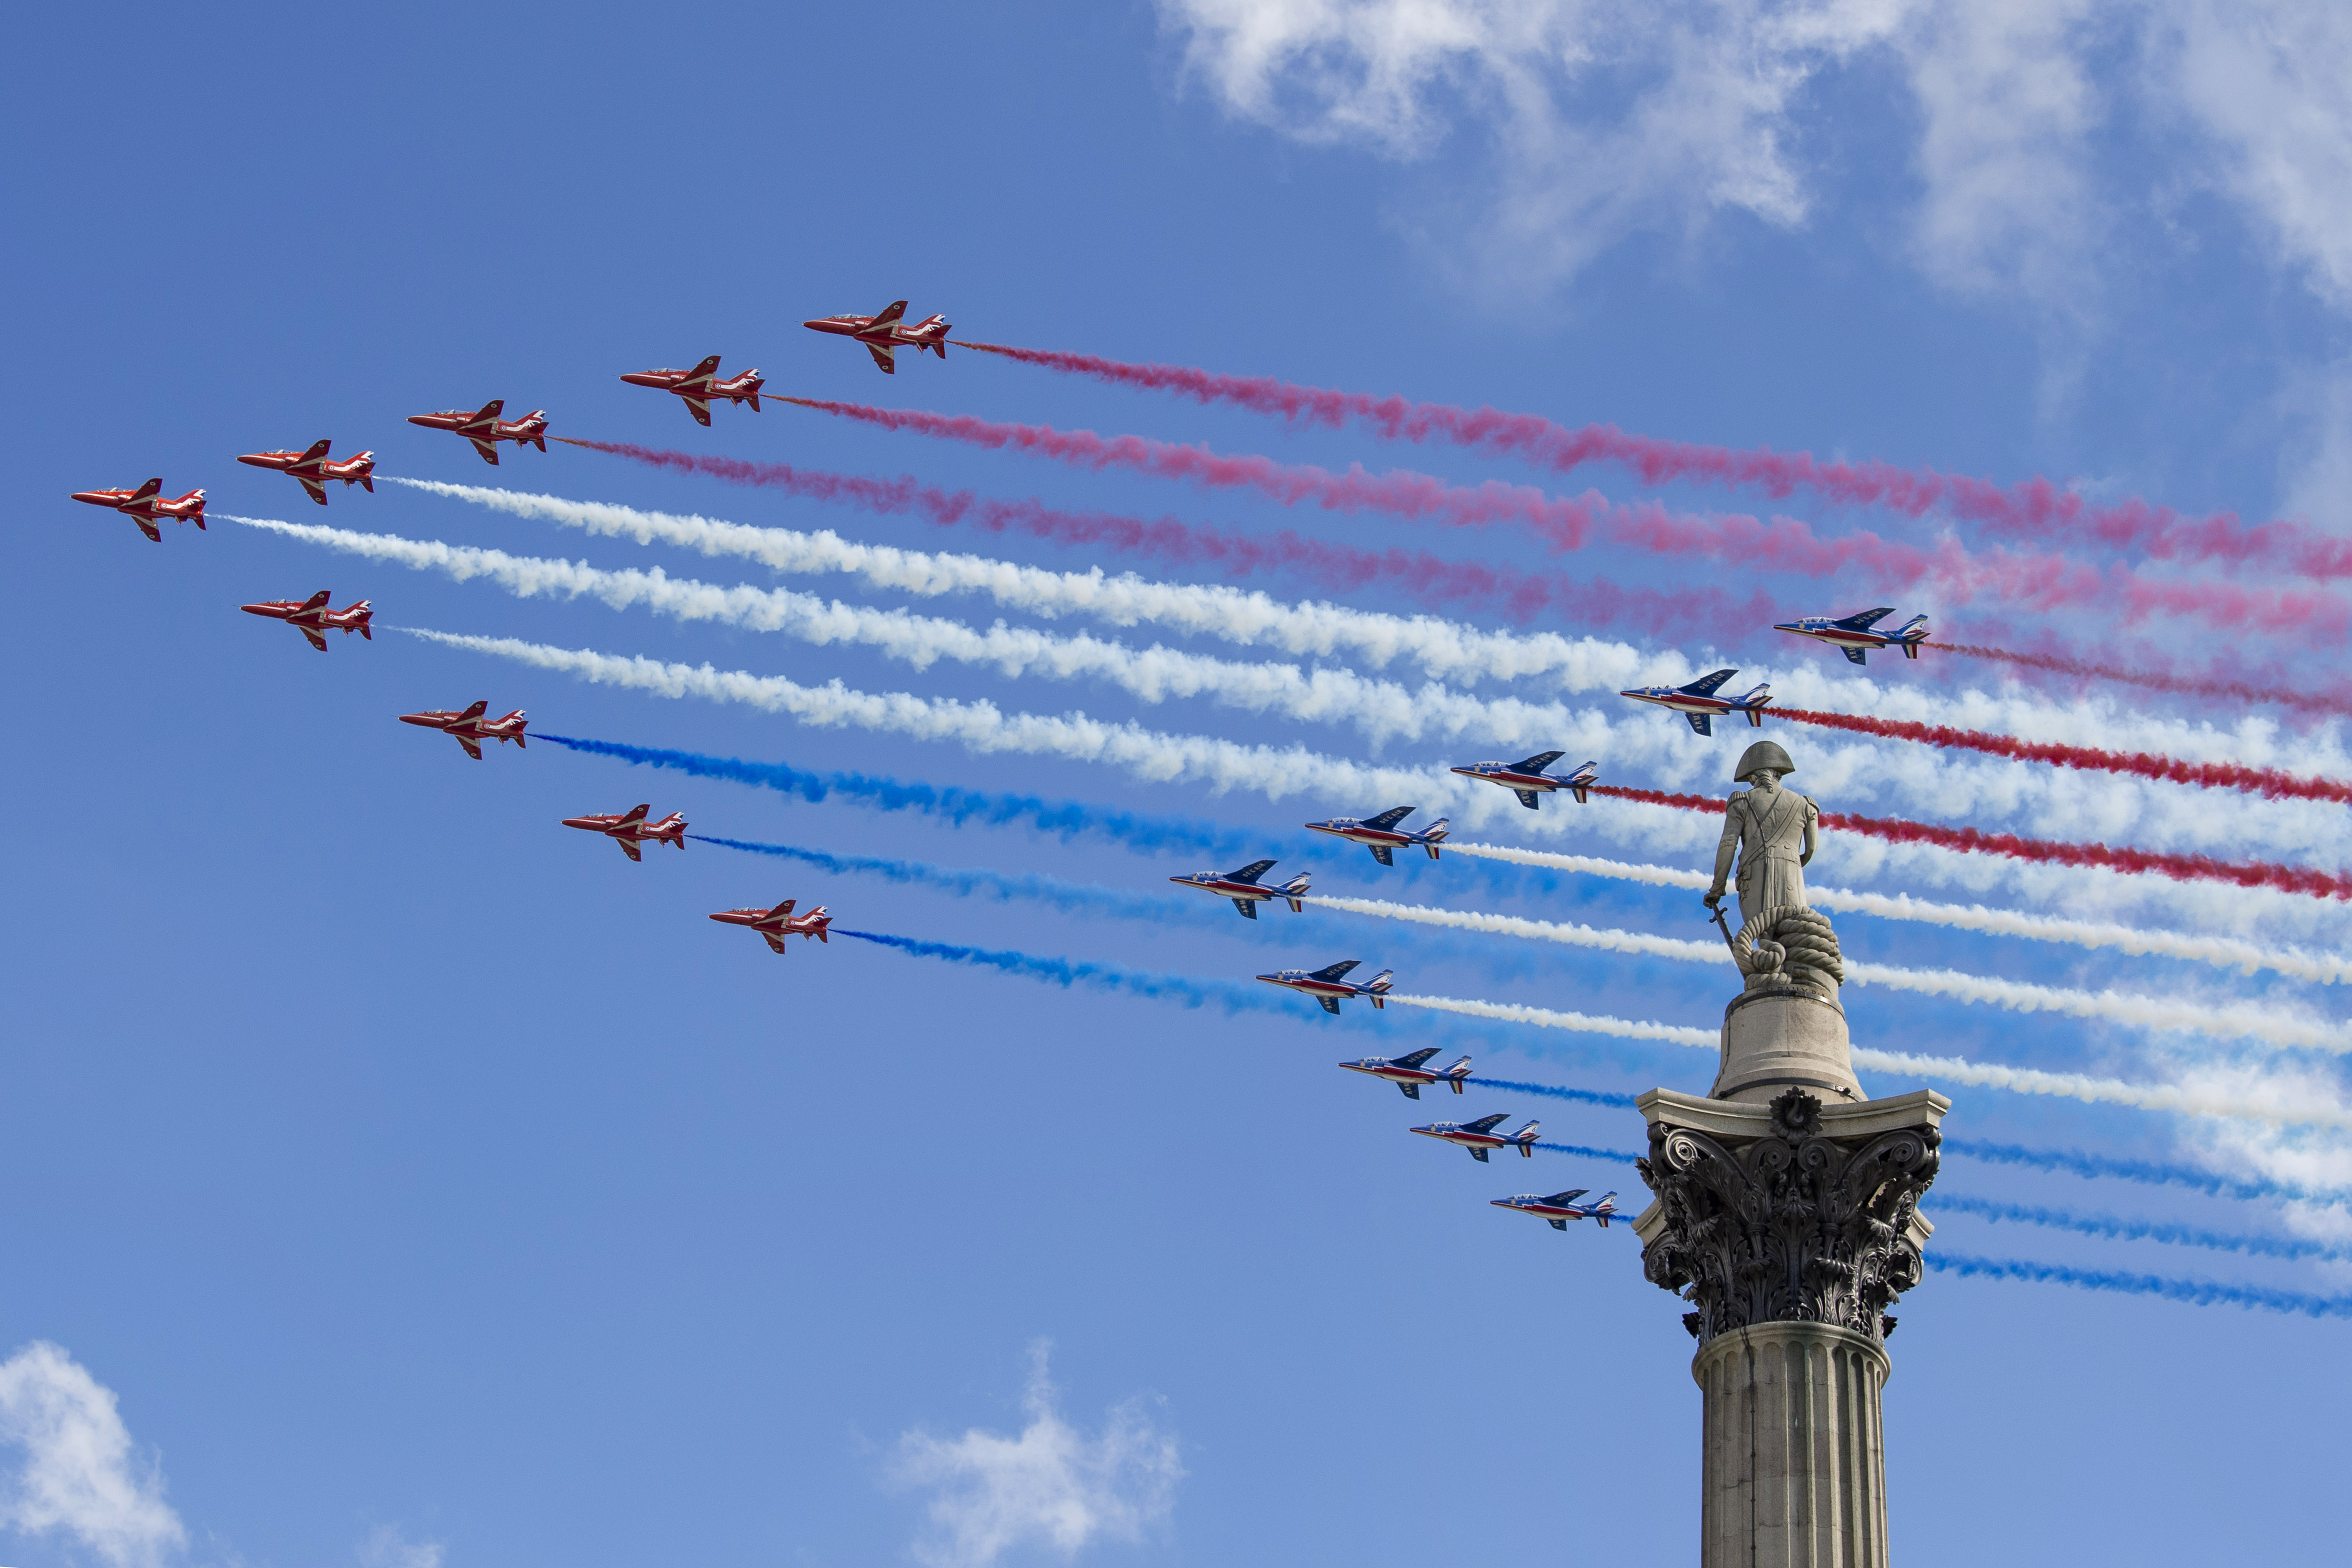 The Red Arrows and the Patrouille de France flypast over Nelson's Column in London to mark the visit of President of the Republic of France Emmanuel Macron. (Photo by Dave Rushen / SOPA Images/Sipa USA)